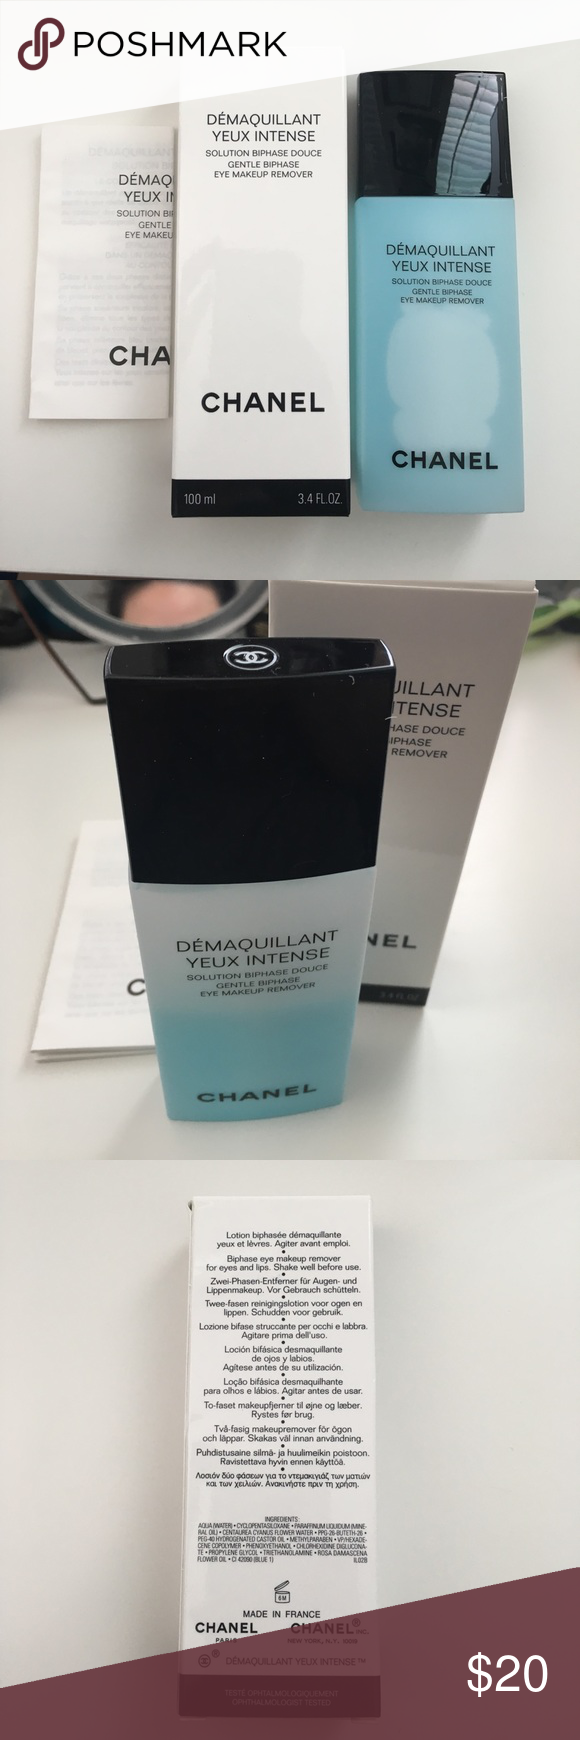 Chanel Demaquillant Yeux Eye Makeup Remover Chanel